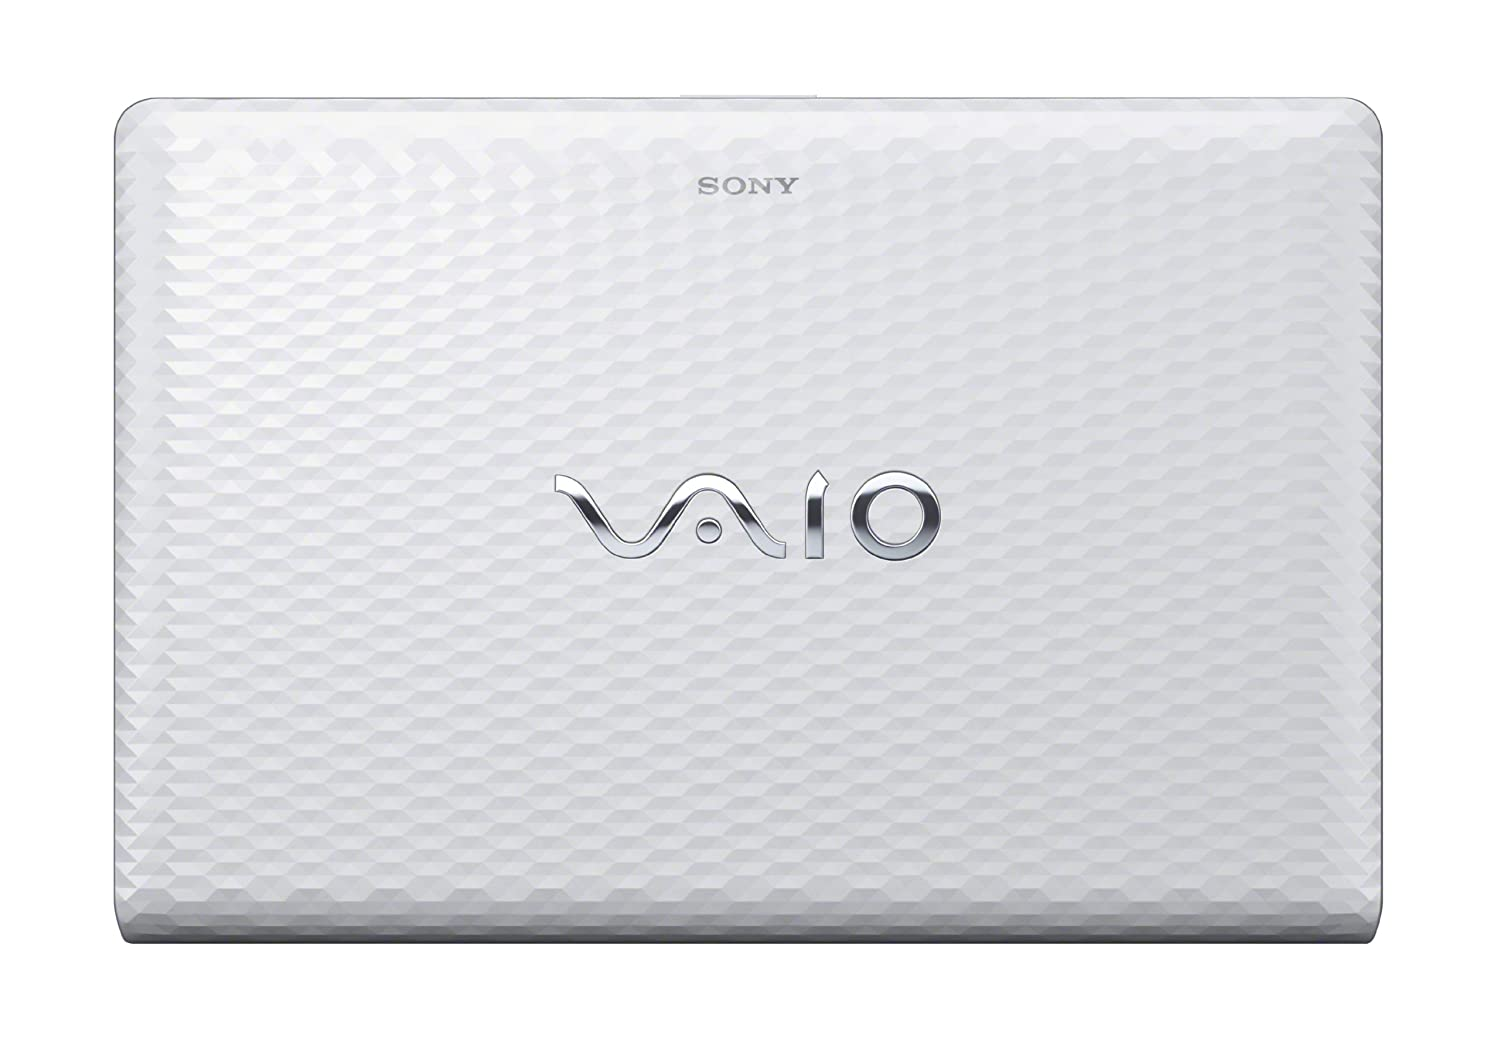 Sony Vaio VPCEH23FX/L Shared Library Driver for Mac Download